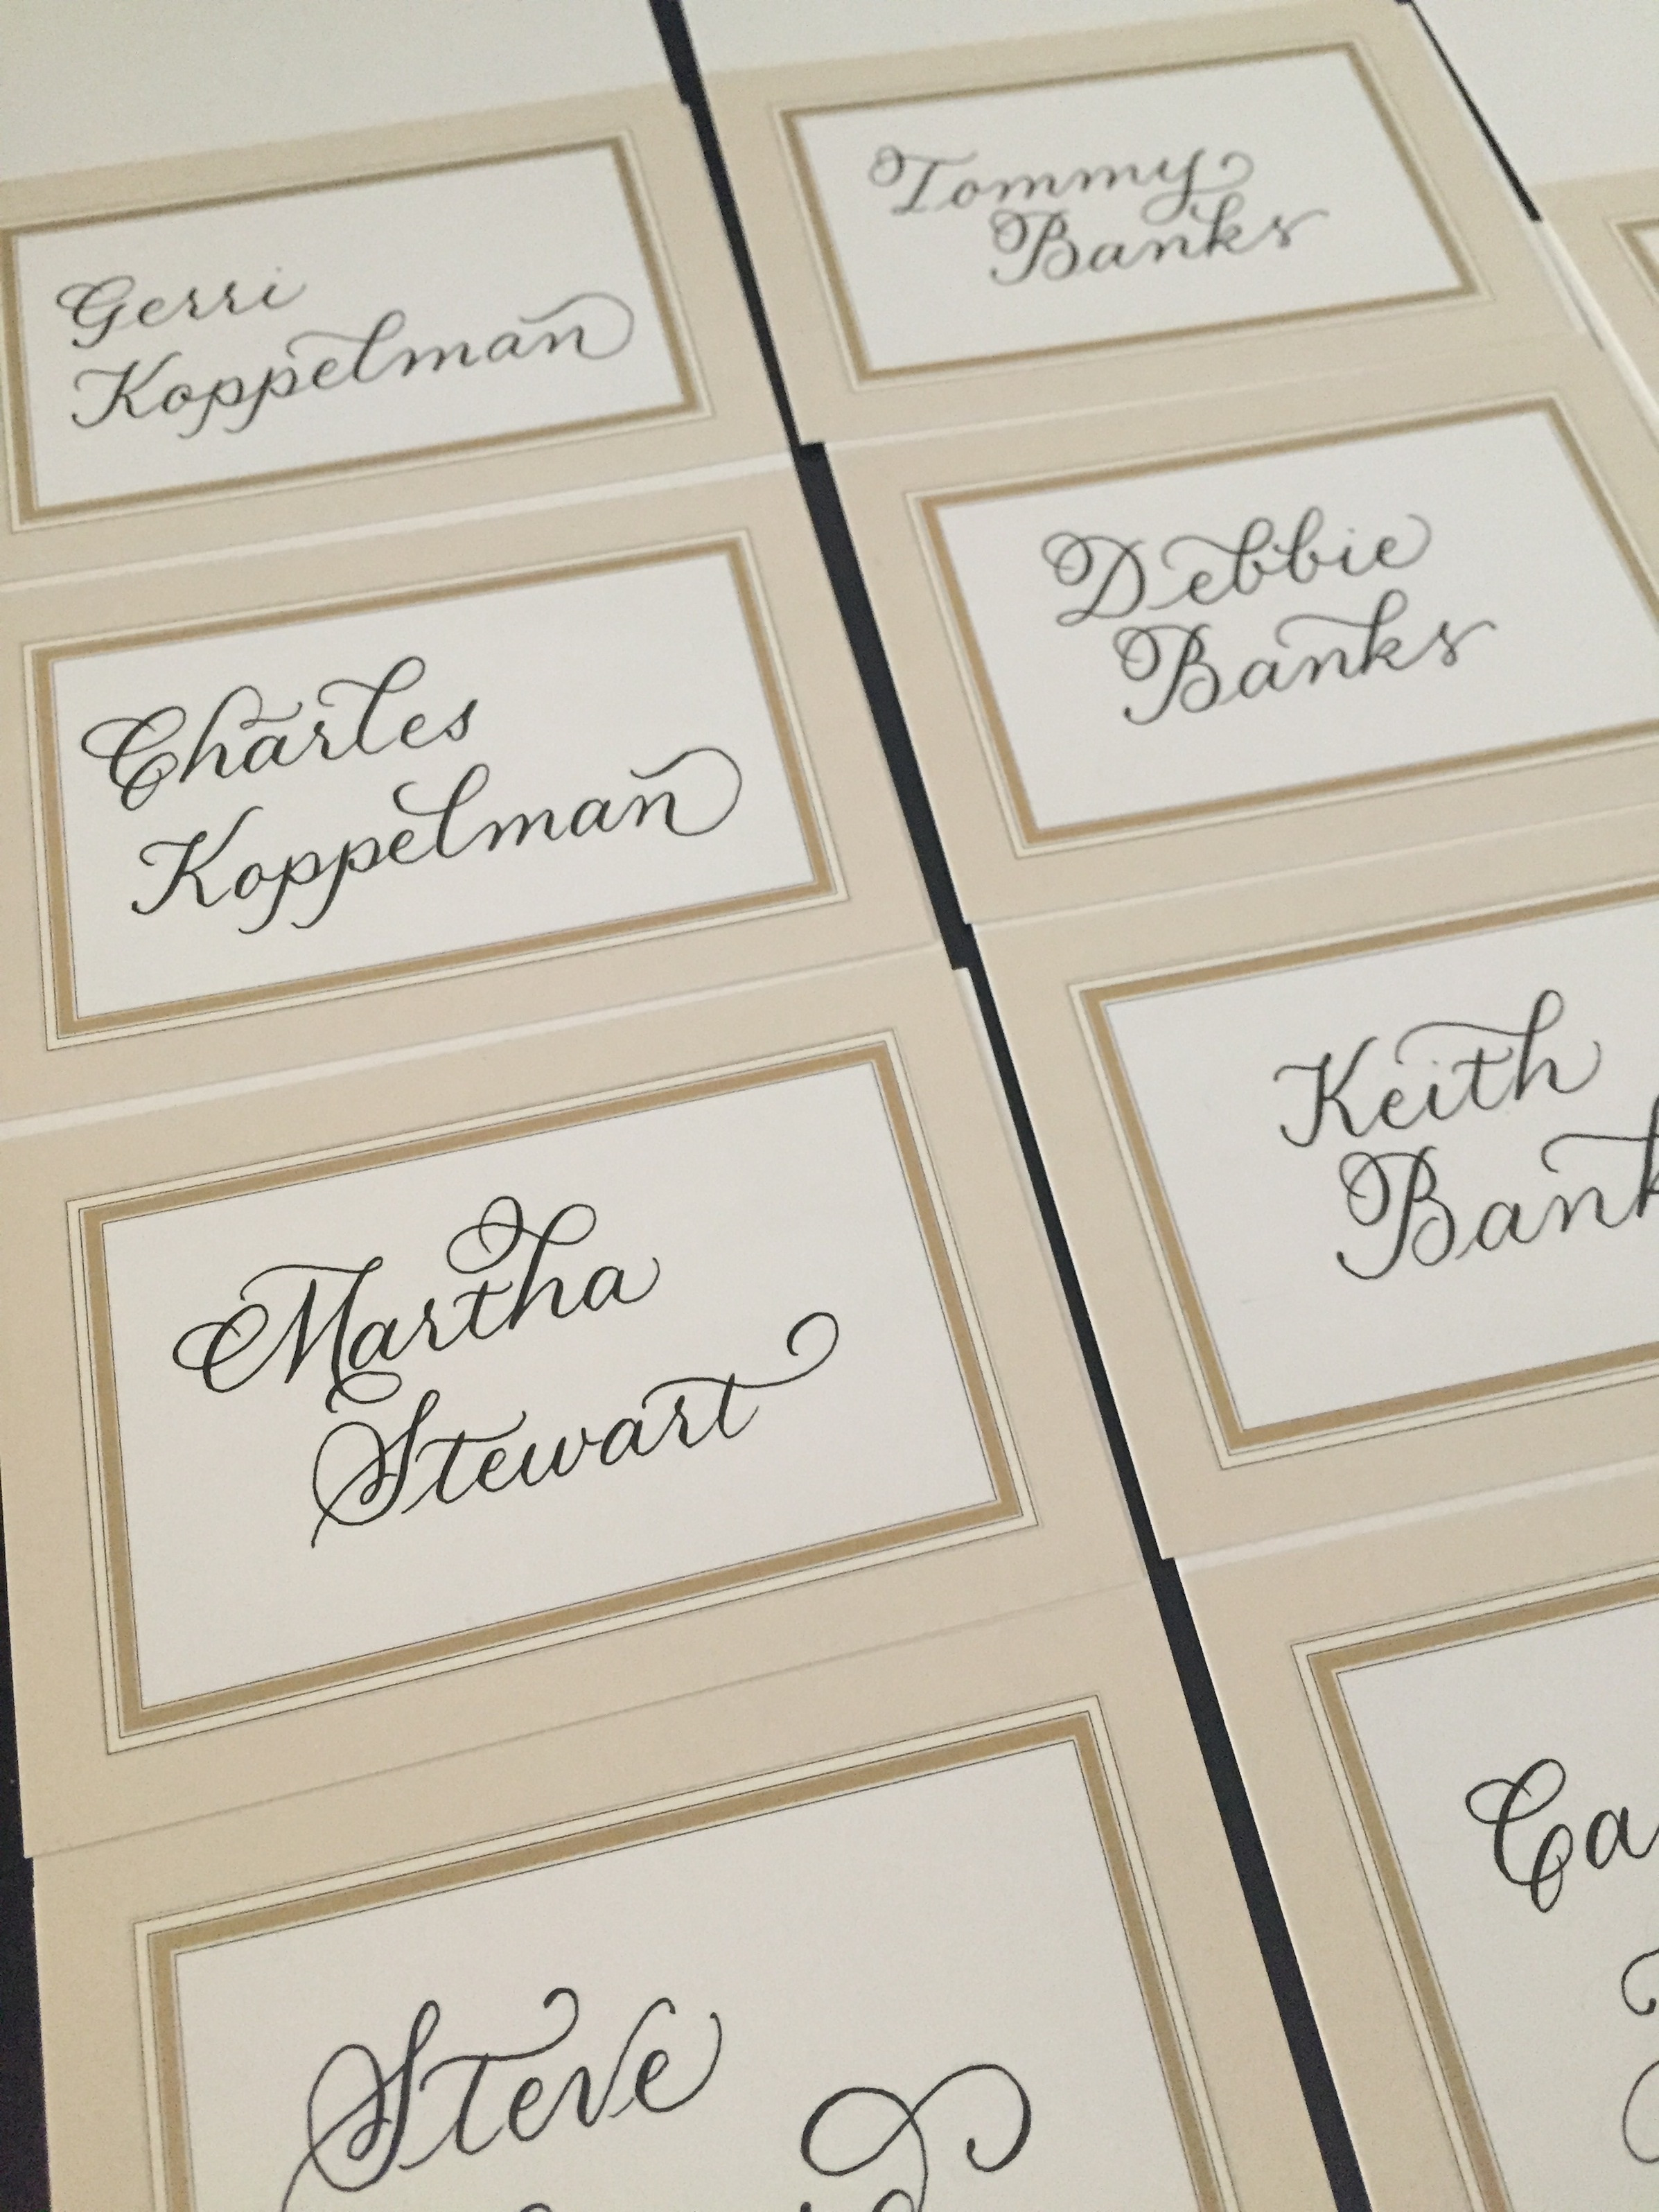 An actual place card for THE Martha Stewart for a corporate event in NYC